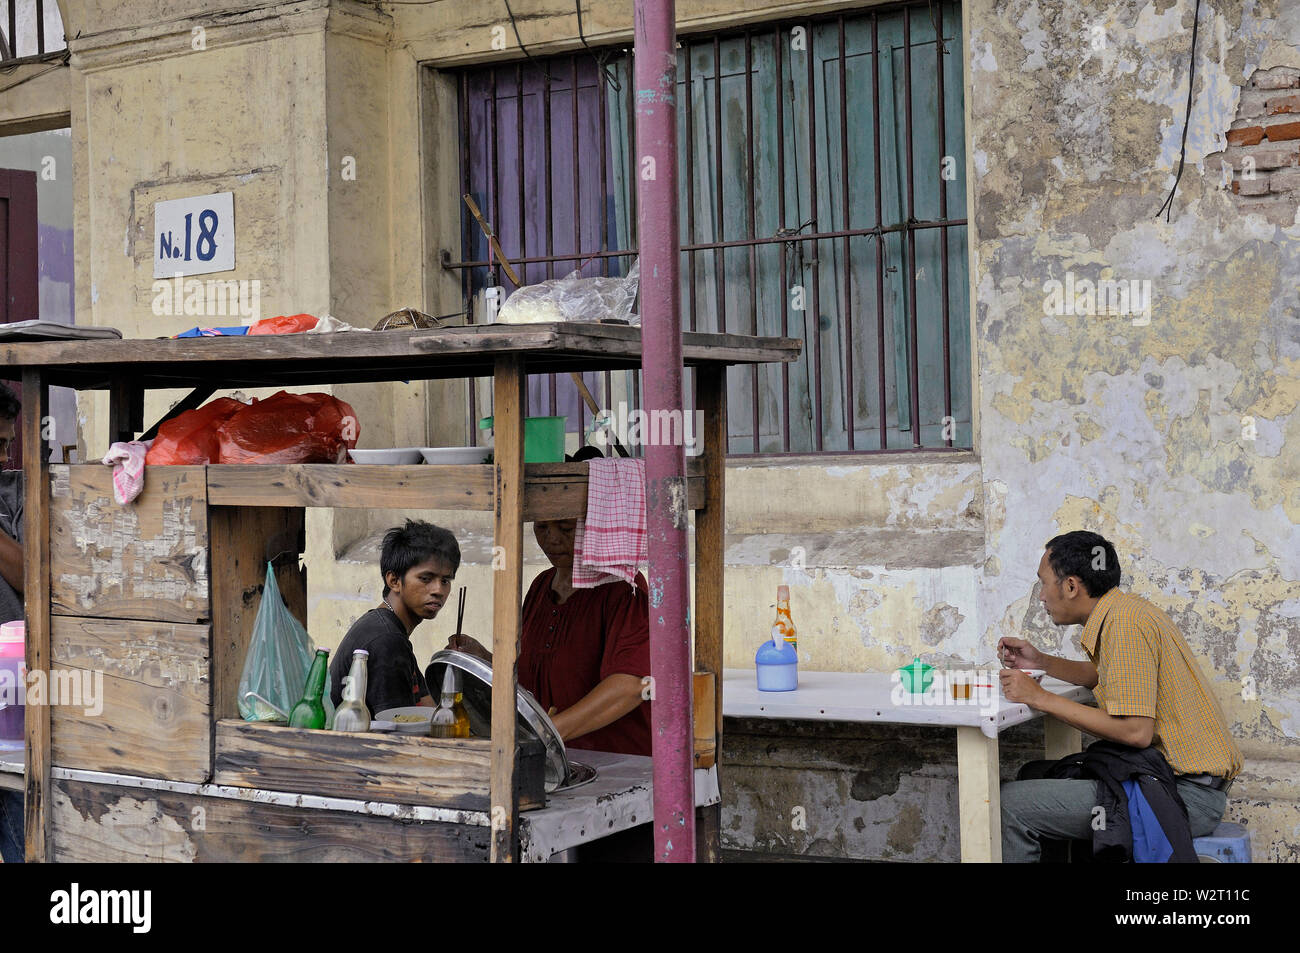 jakarta, dki jakarta/indonesia - may 19, 2010:  people having their lunch at a  mobile foodstall   in jakarta kota tua old town - Stock Image